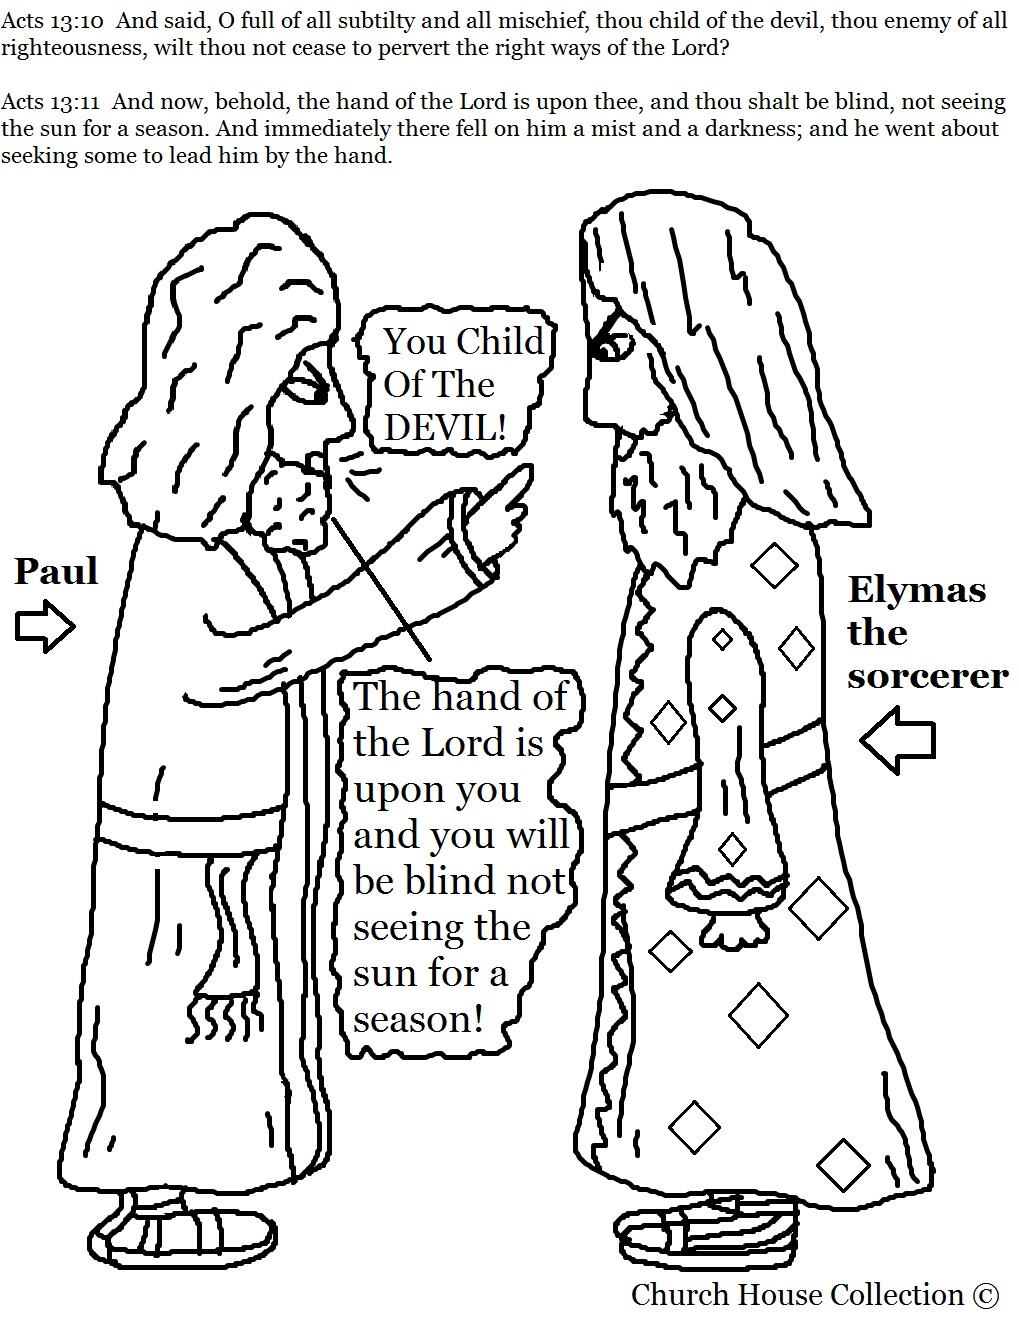 Saul to Paul Craft http://churchhousecollection.blogspot.com/2012/05/paul-and-elymas-sorcerer-coloring-page.html